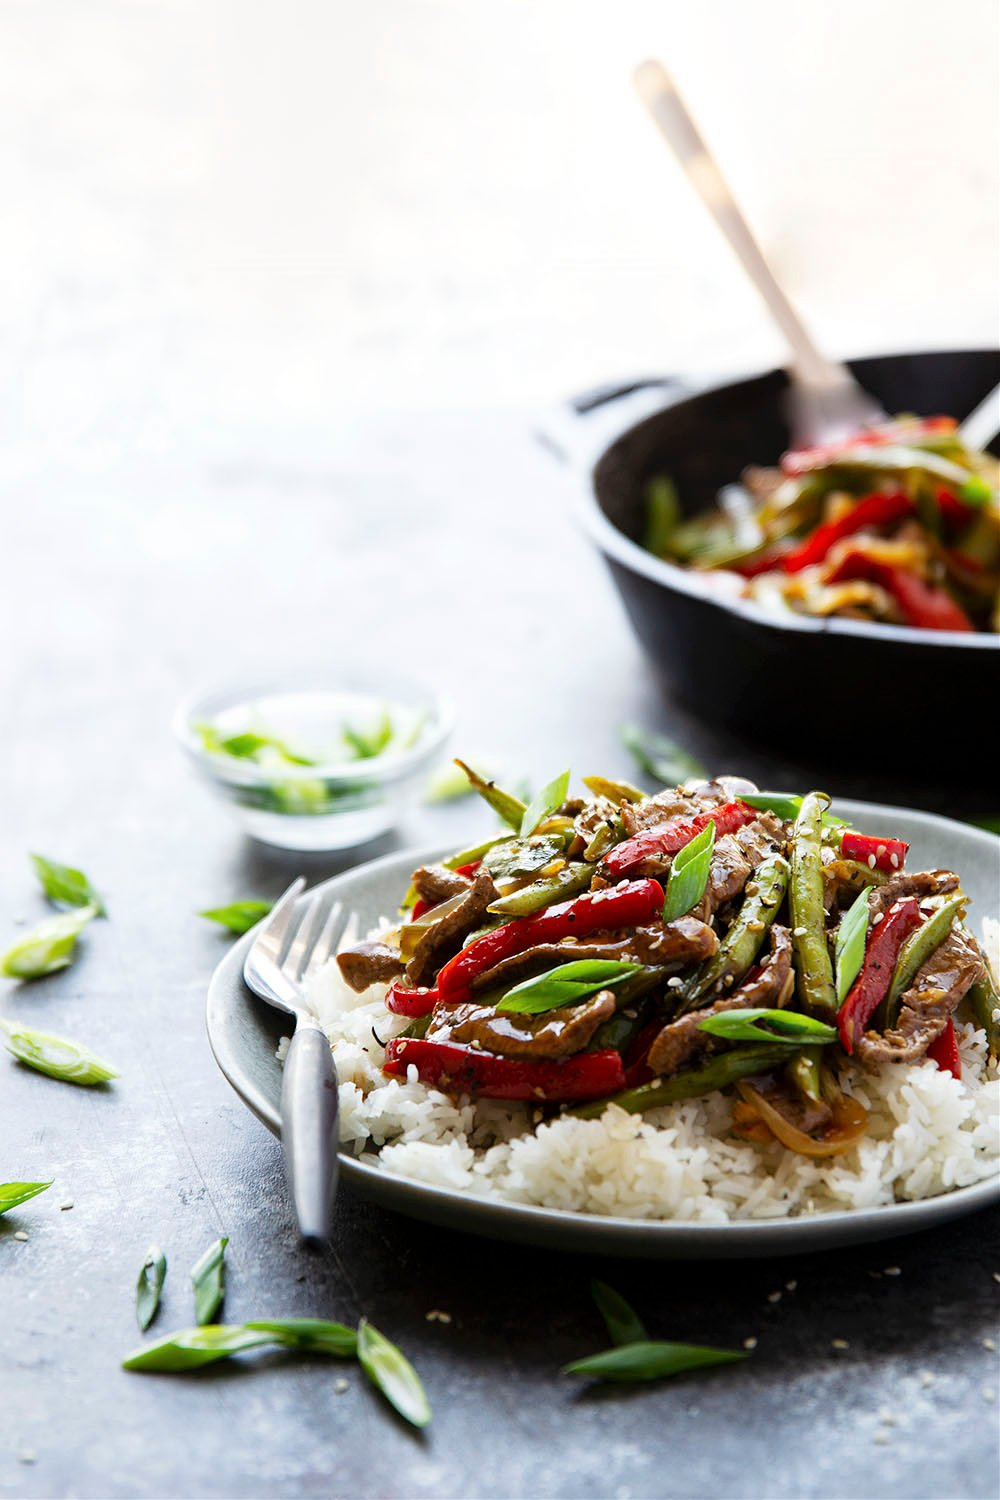 Restaurant-style black pepper beef is loaded with juicy beef strips, tender veggies, and coated in a sticky ginger black pepper sauce.